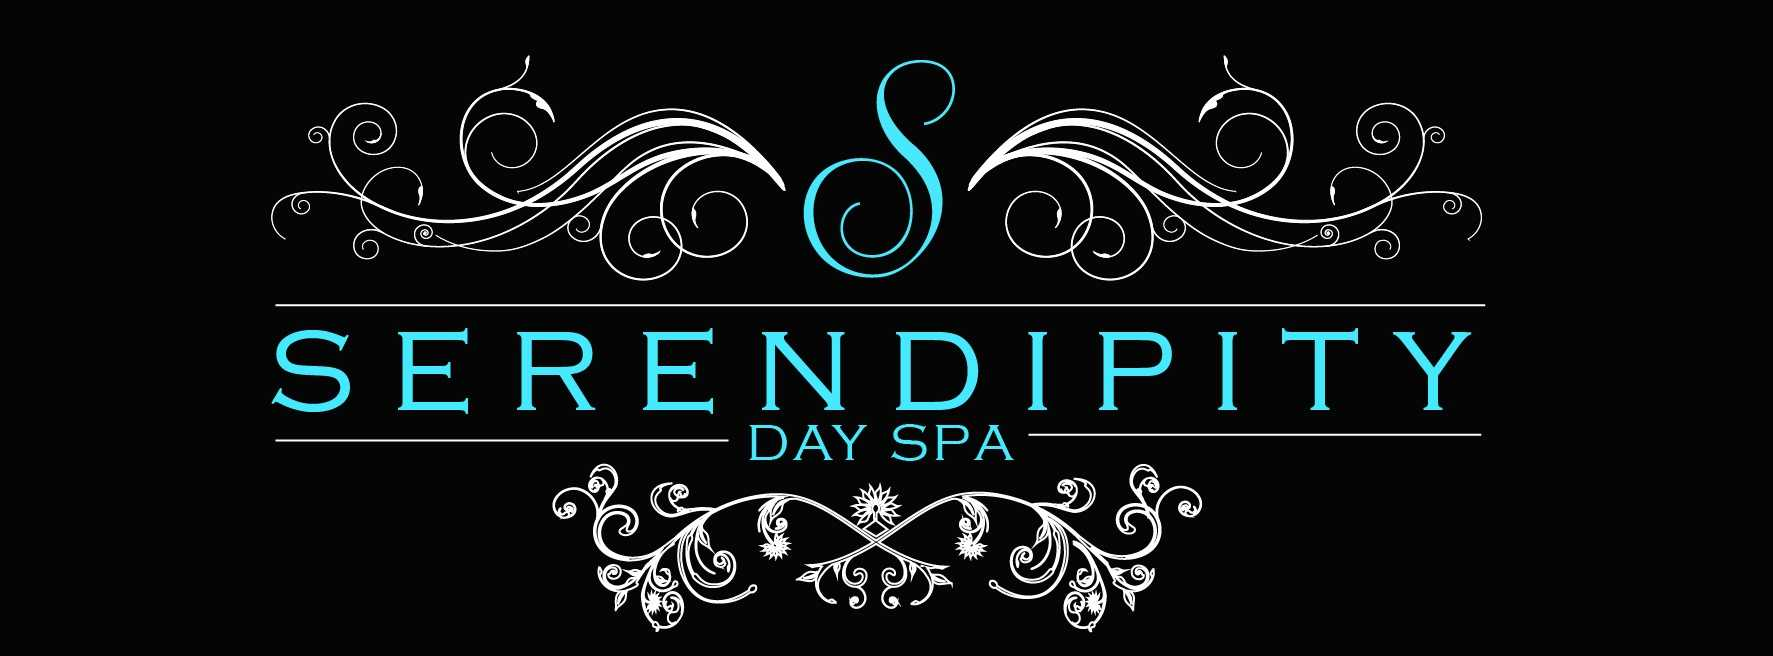 14 tie. Serendipity Day Spa in Pembroke